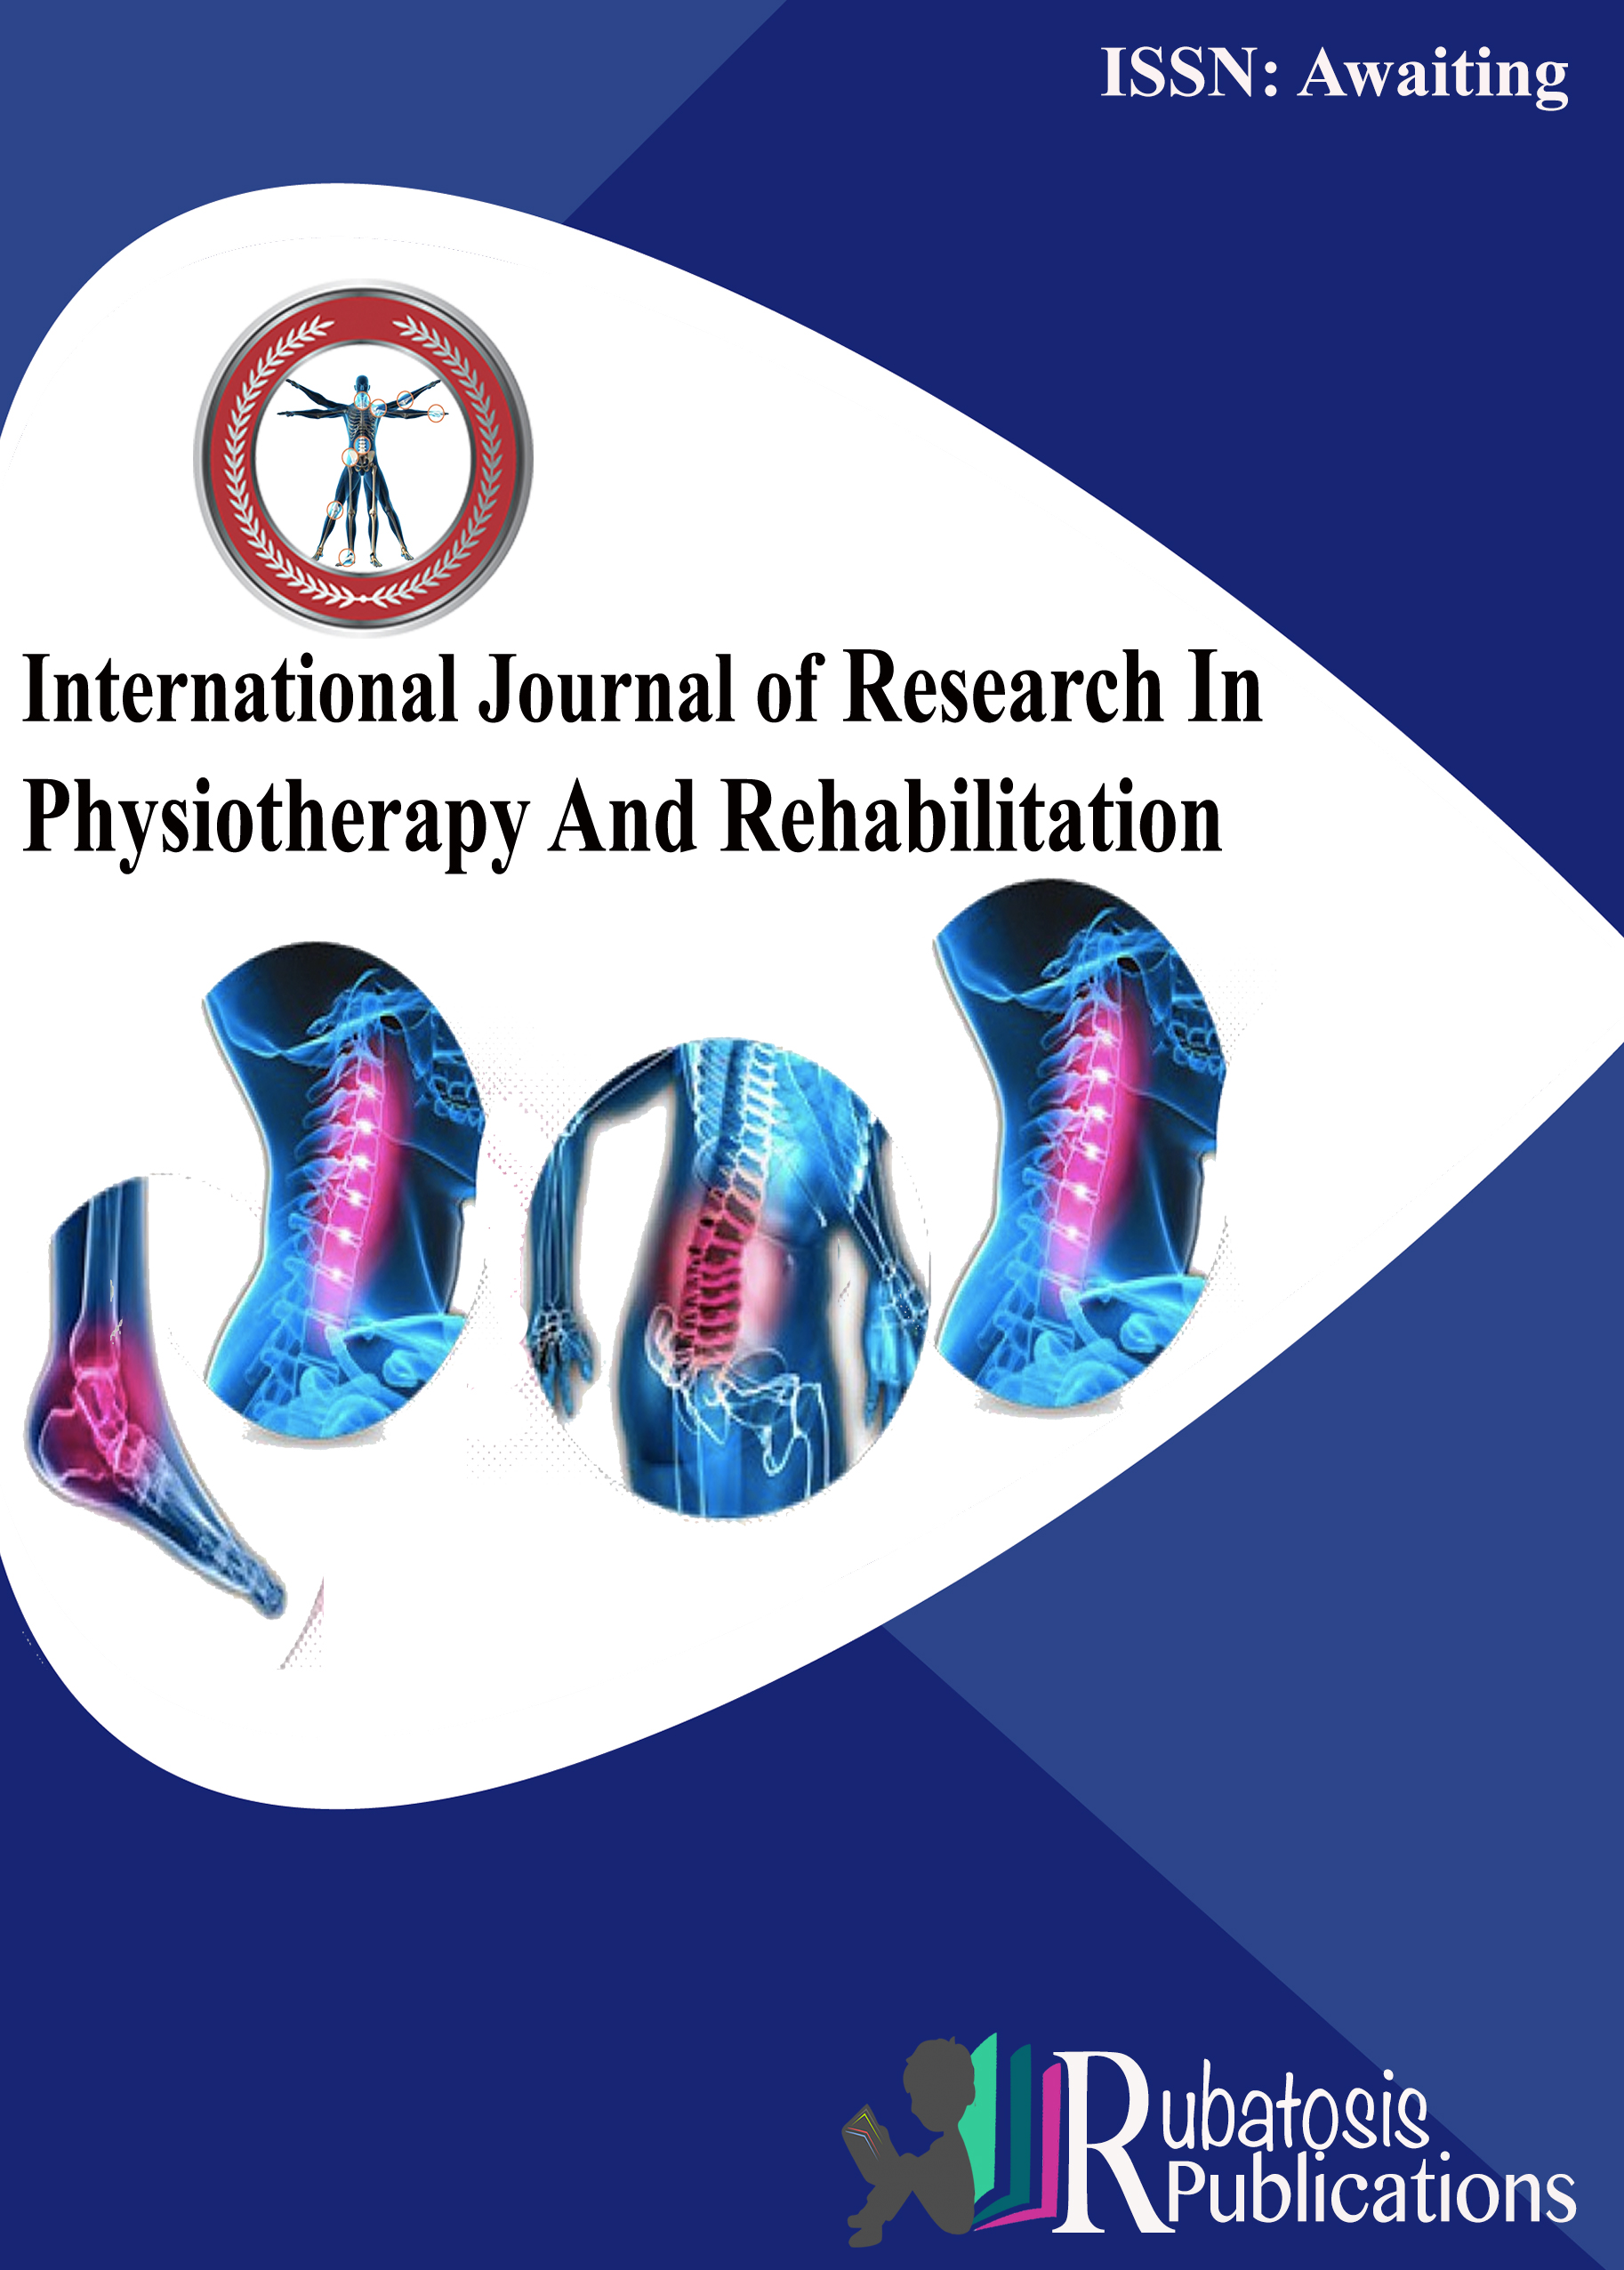 International Journal of Research In Physiotherapy And Rehabilitation